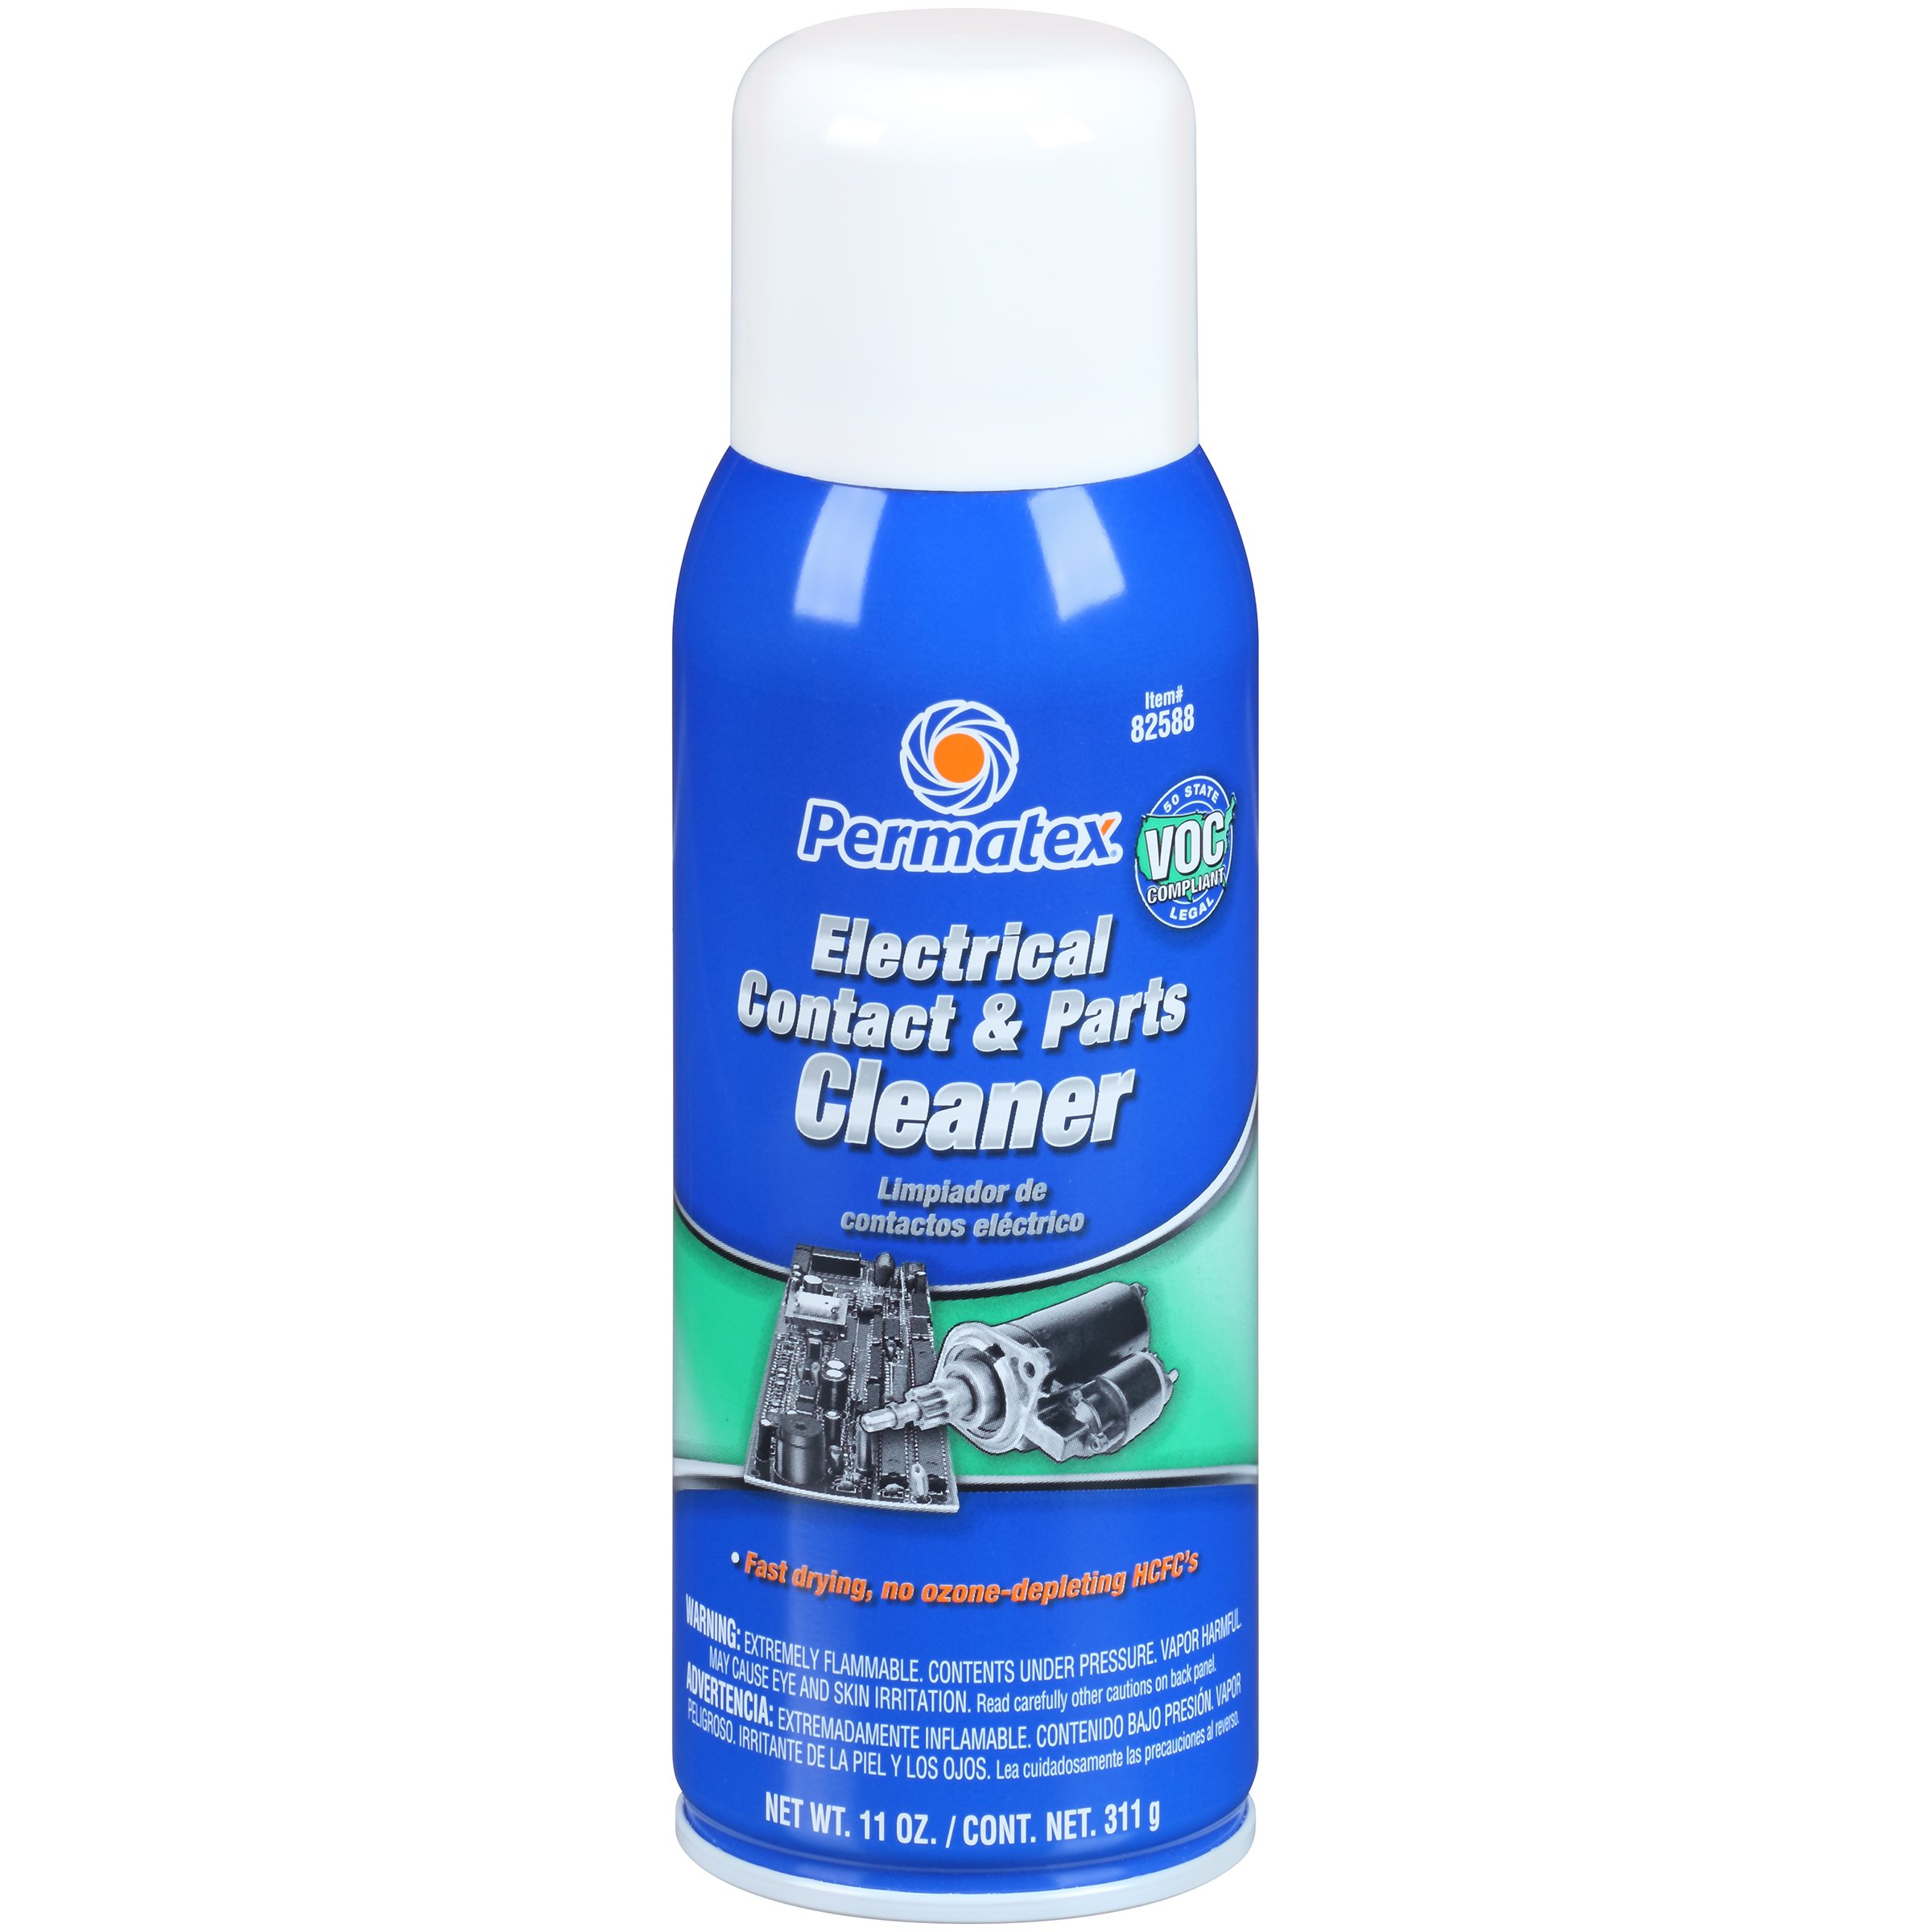 Permatex 82588 Electrical Contact and Parts Cleaner, 11 oz. by Permatex